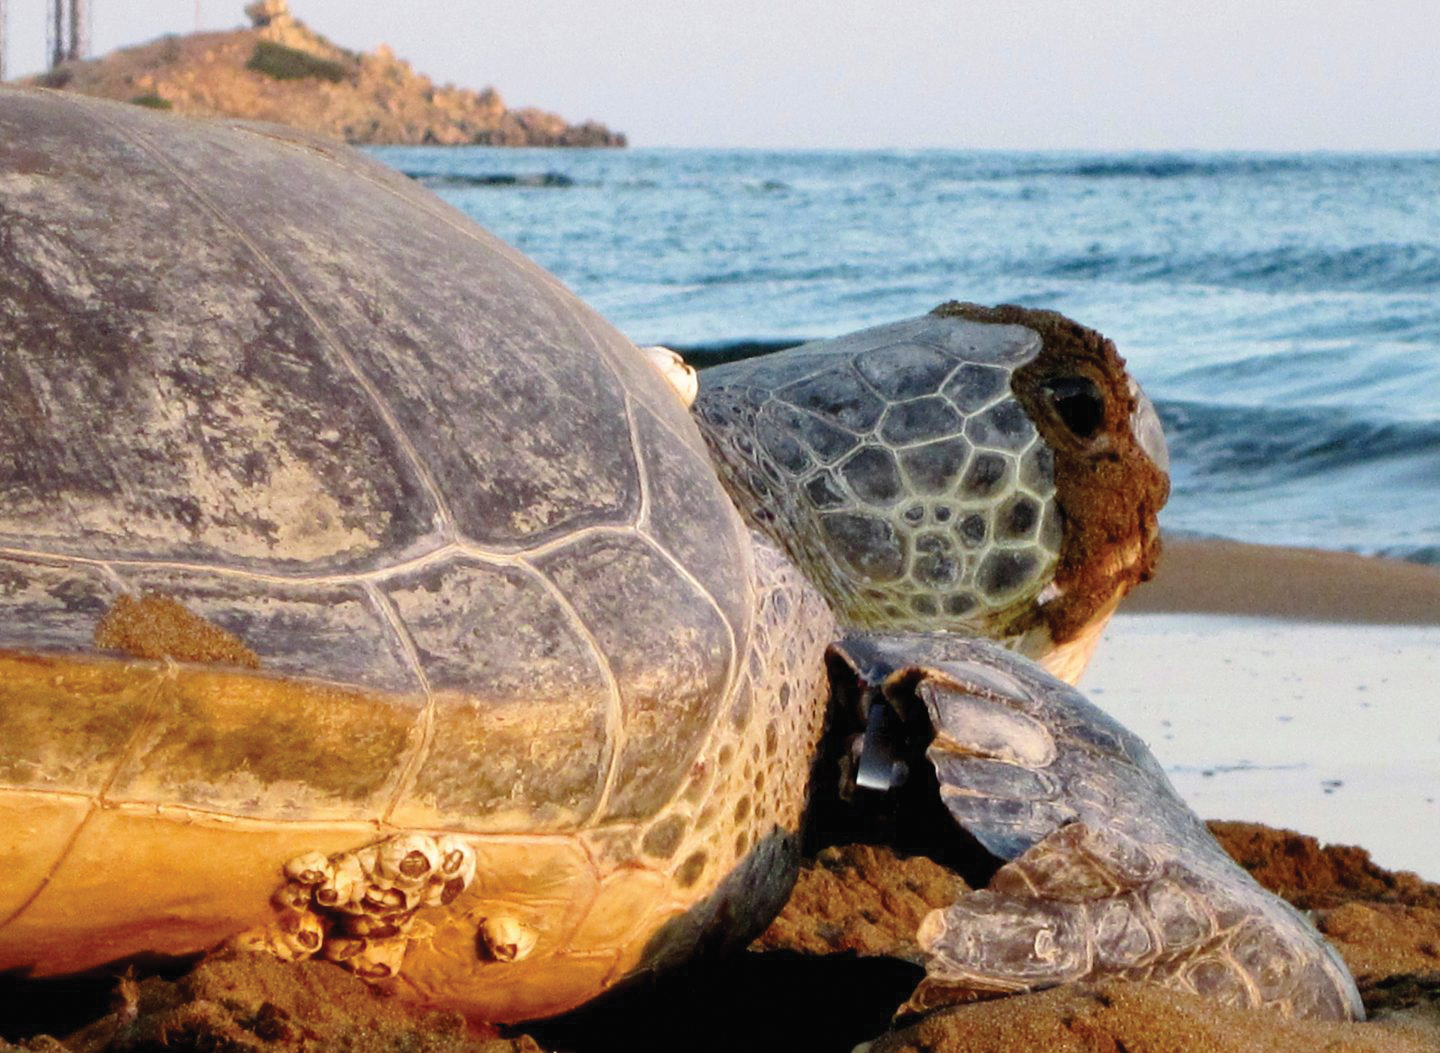 A green turtle returns to sea after nesting on the island of Cyprus. © LAWRENCE SAMPSON